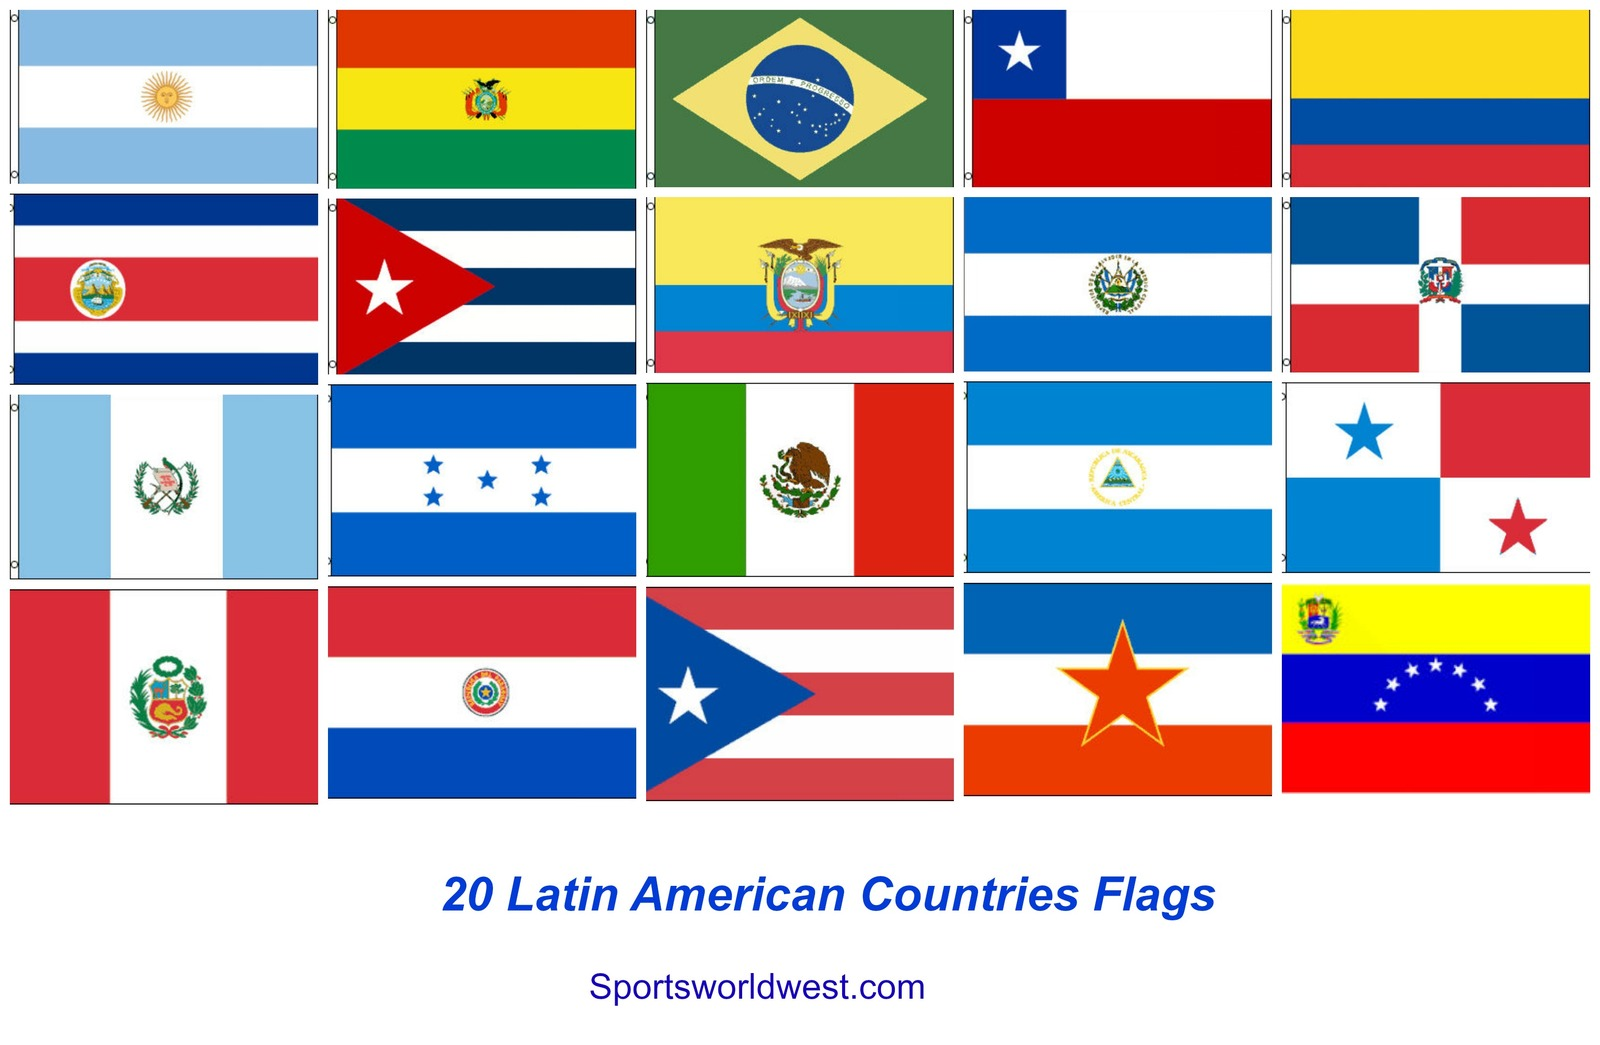 20 Latin American Countries Flags Ship FREE